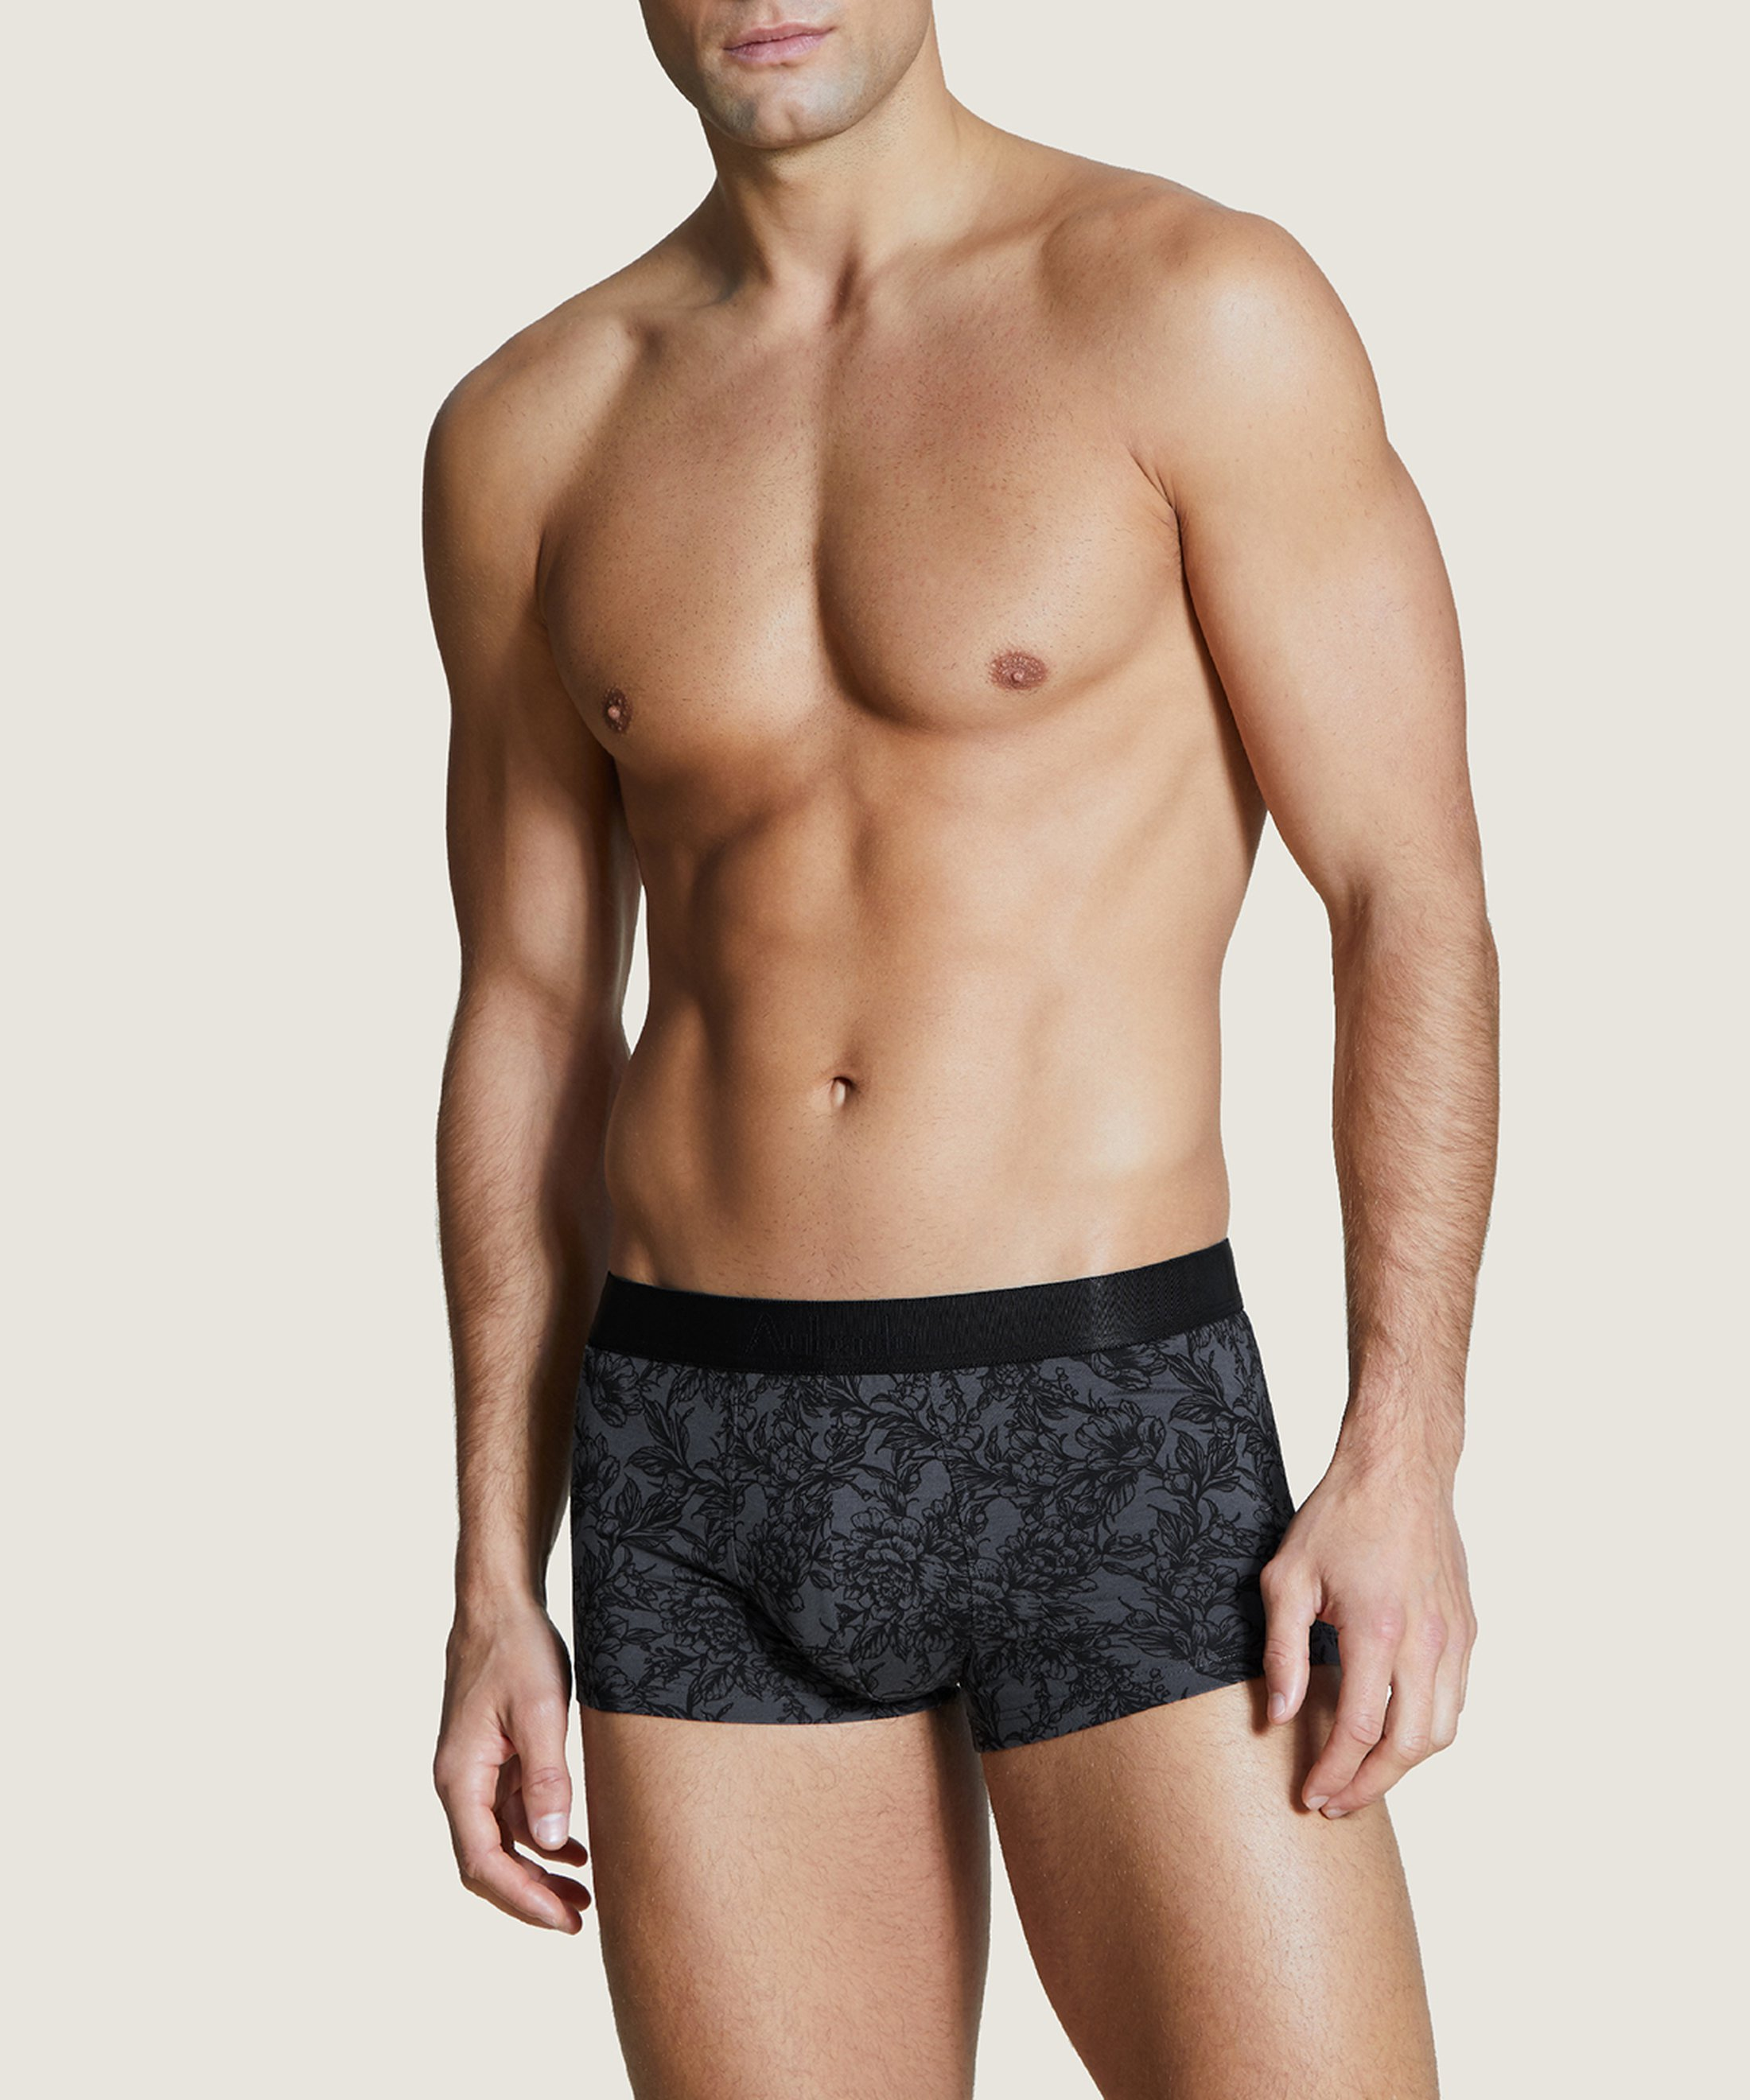 AUBADE HOMME Trunk boxer Grey Tattoo Flower | Aubade